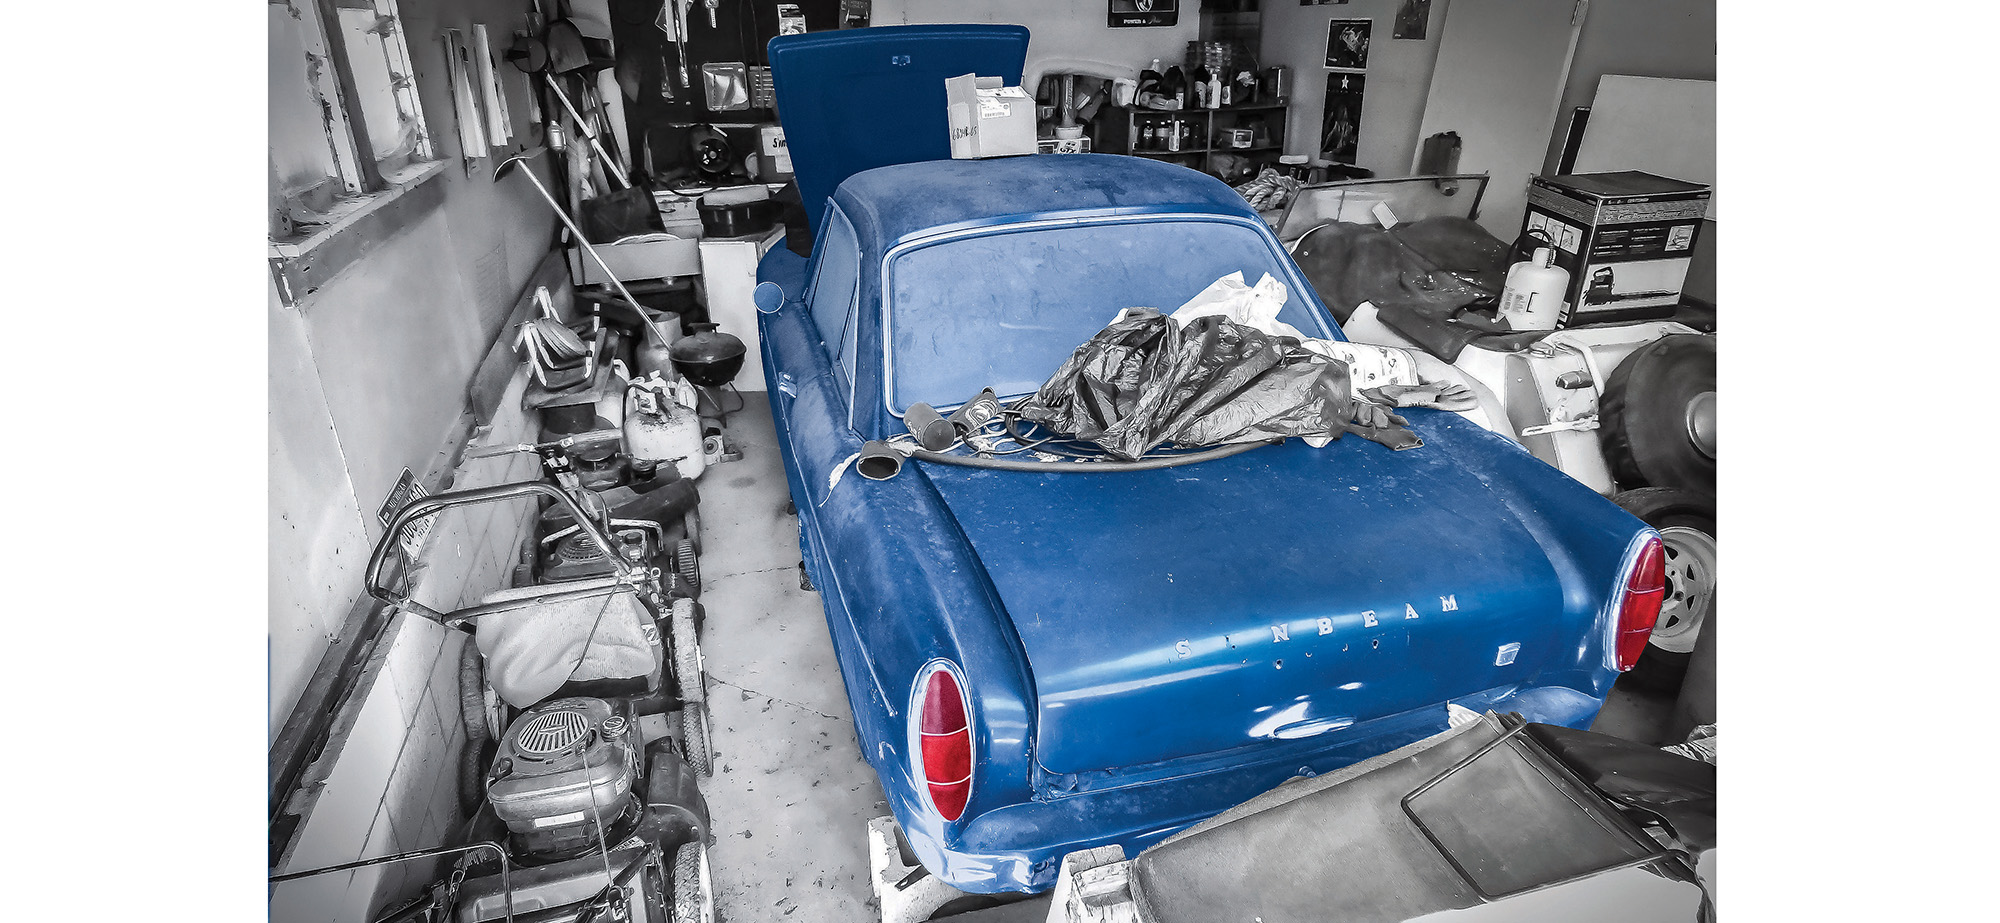 How To Sell A Classic Car: 5 Steps for a Perfect Listing | Articles ...